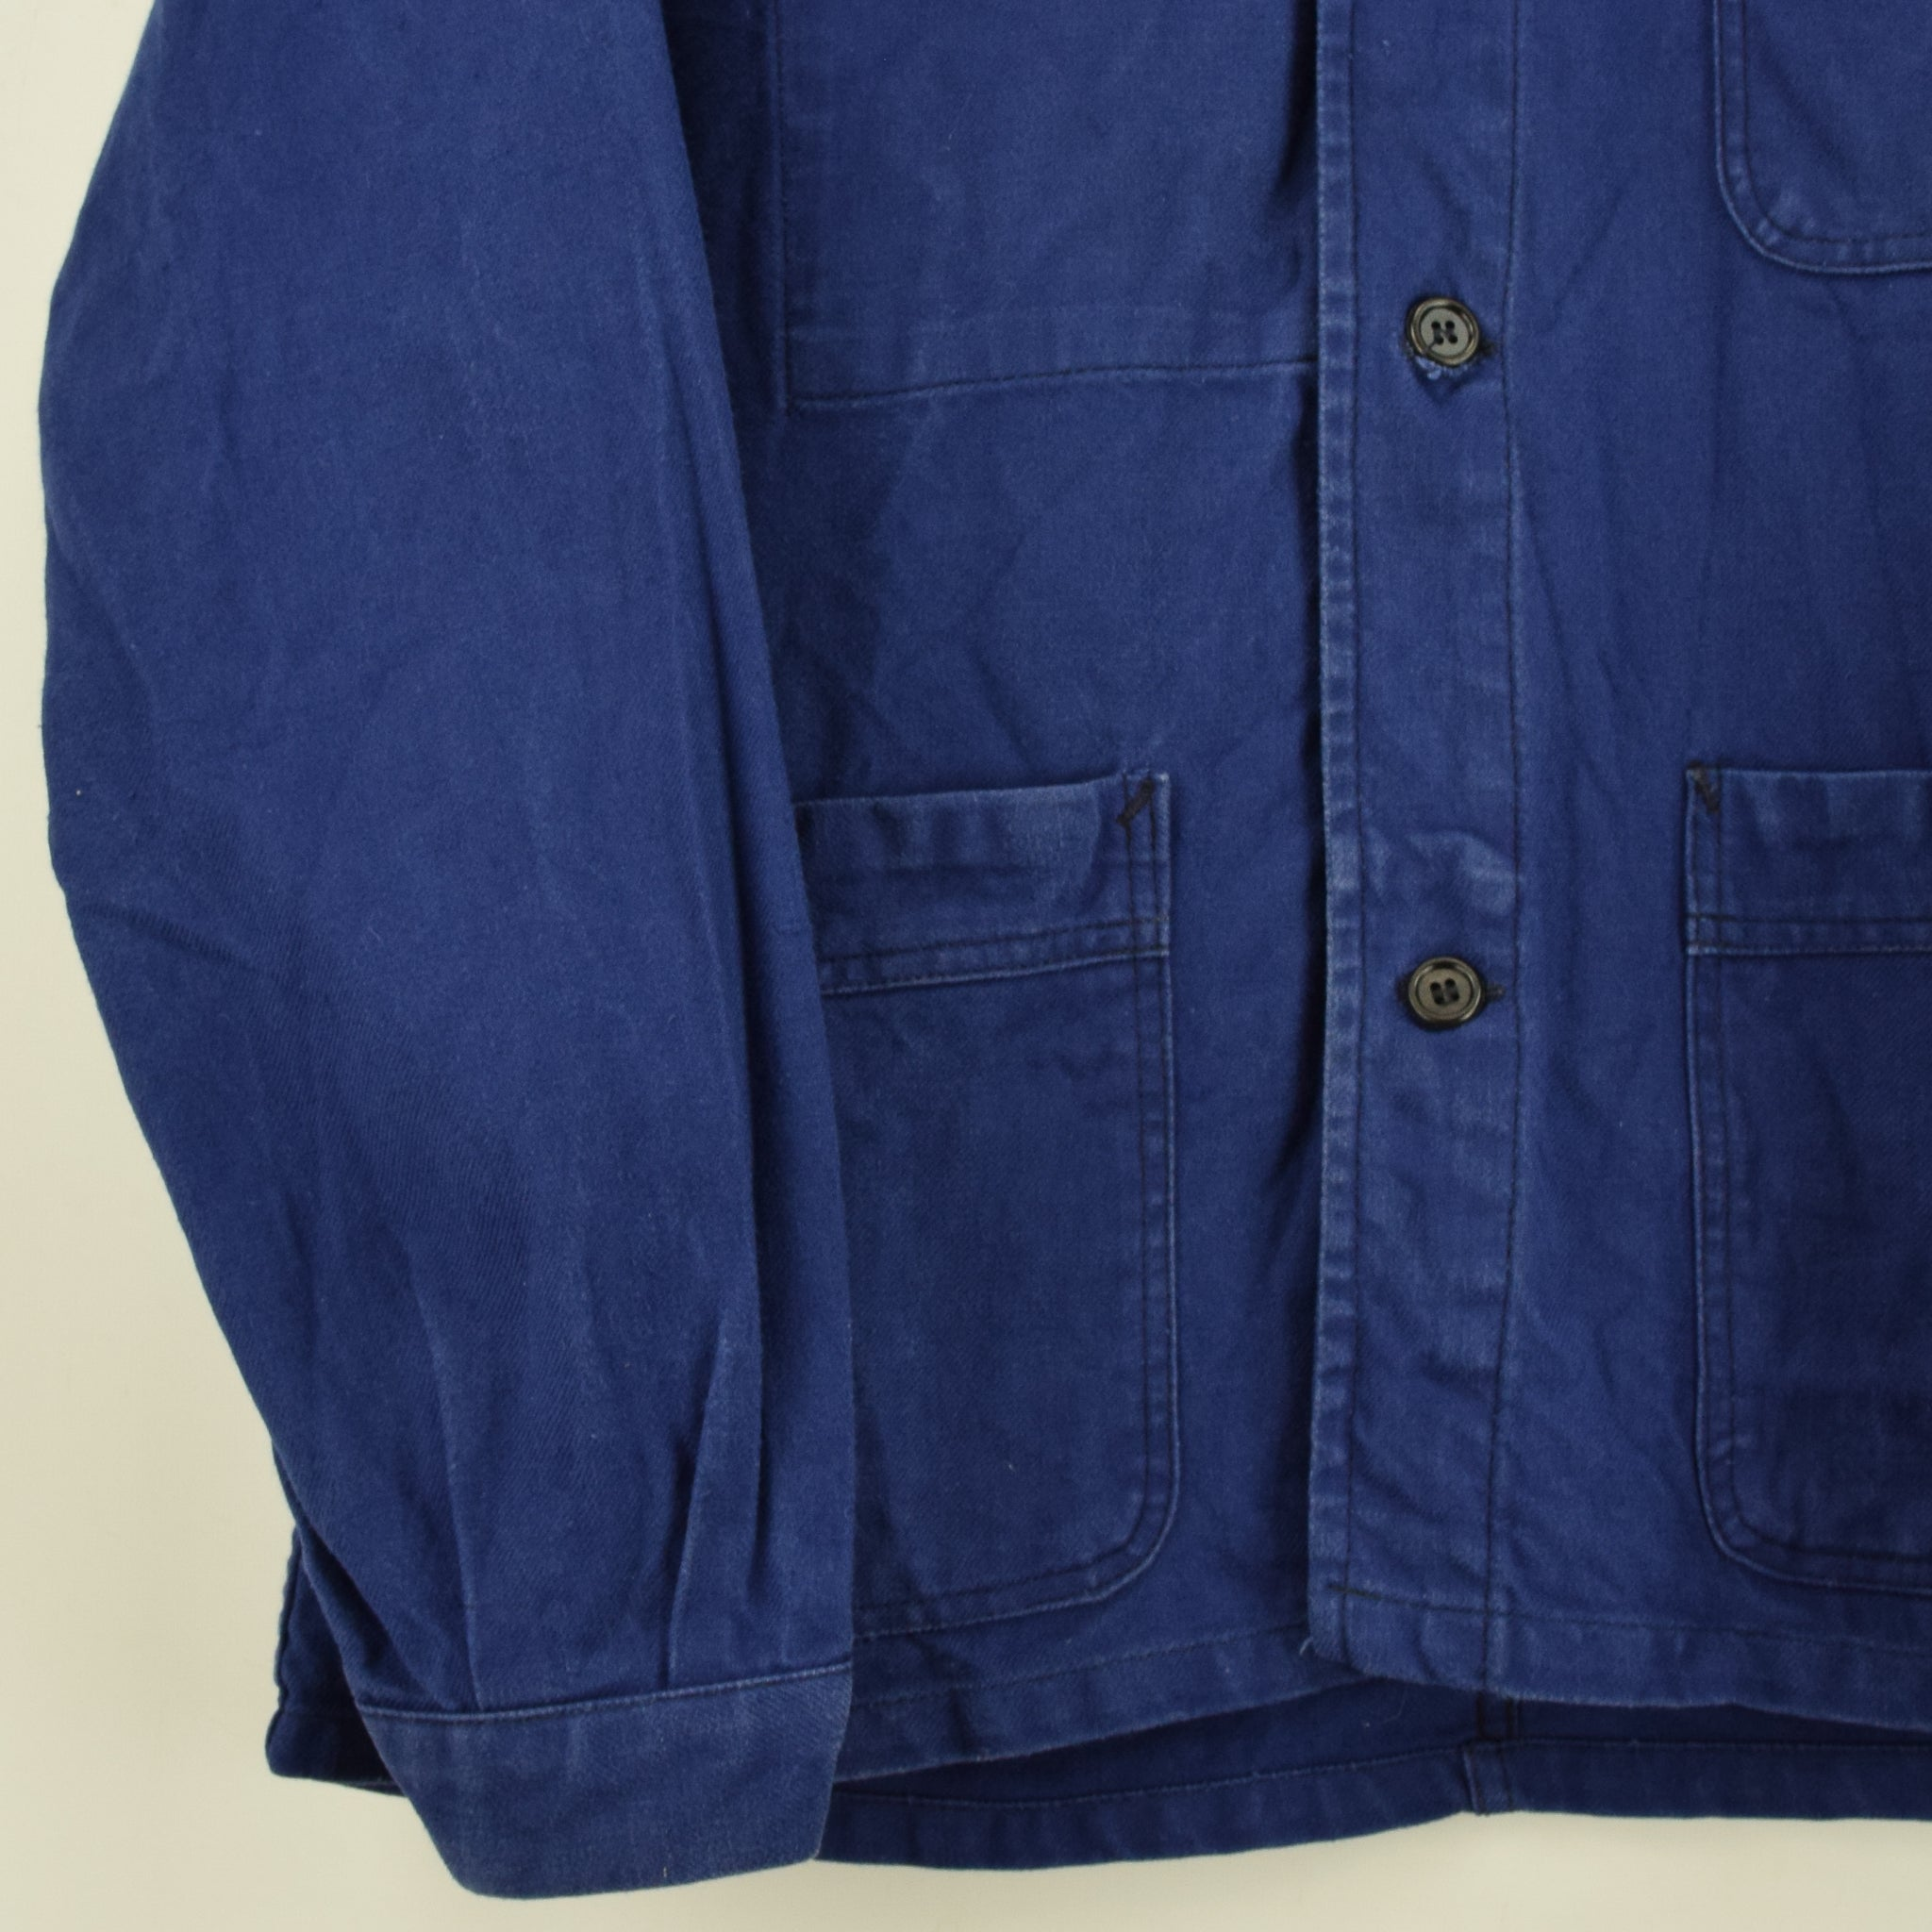 Vintage Indigo Blue French Worker Sanforized Cotton Chore Jacket M front hem